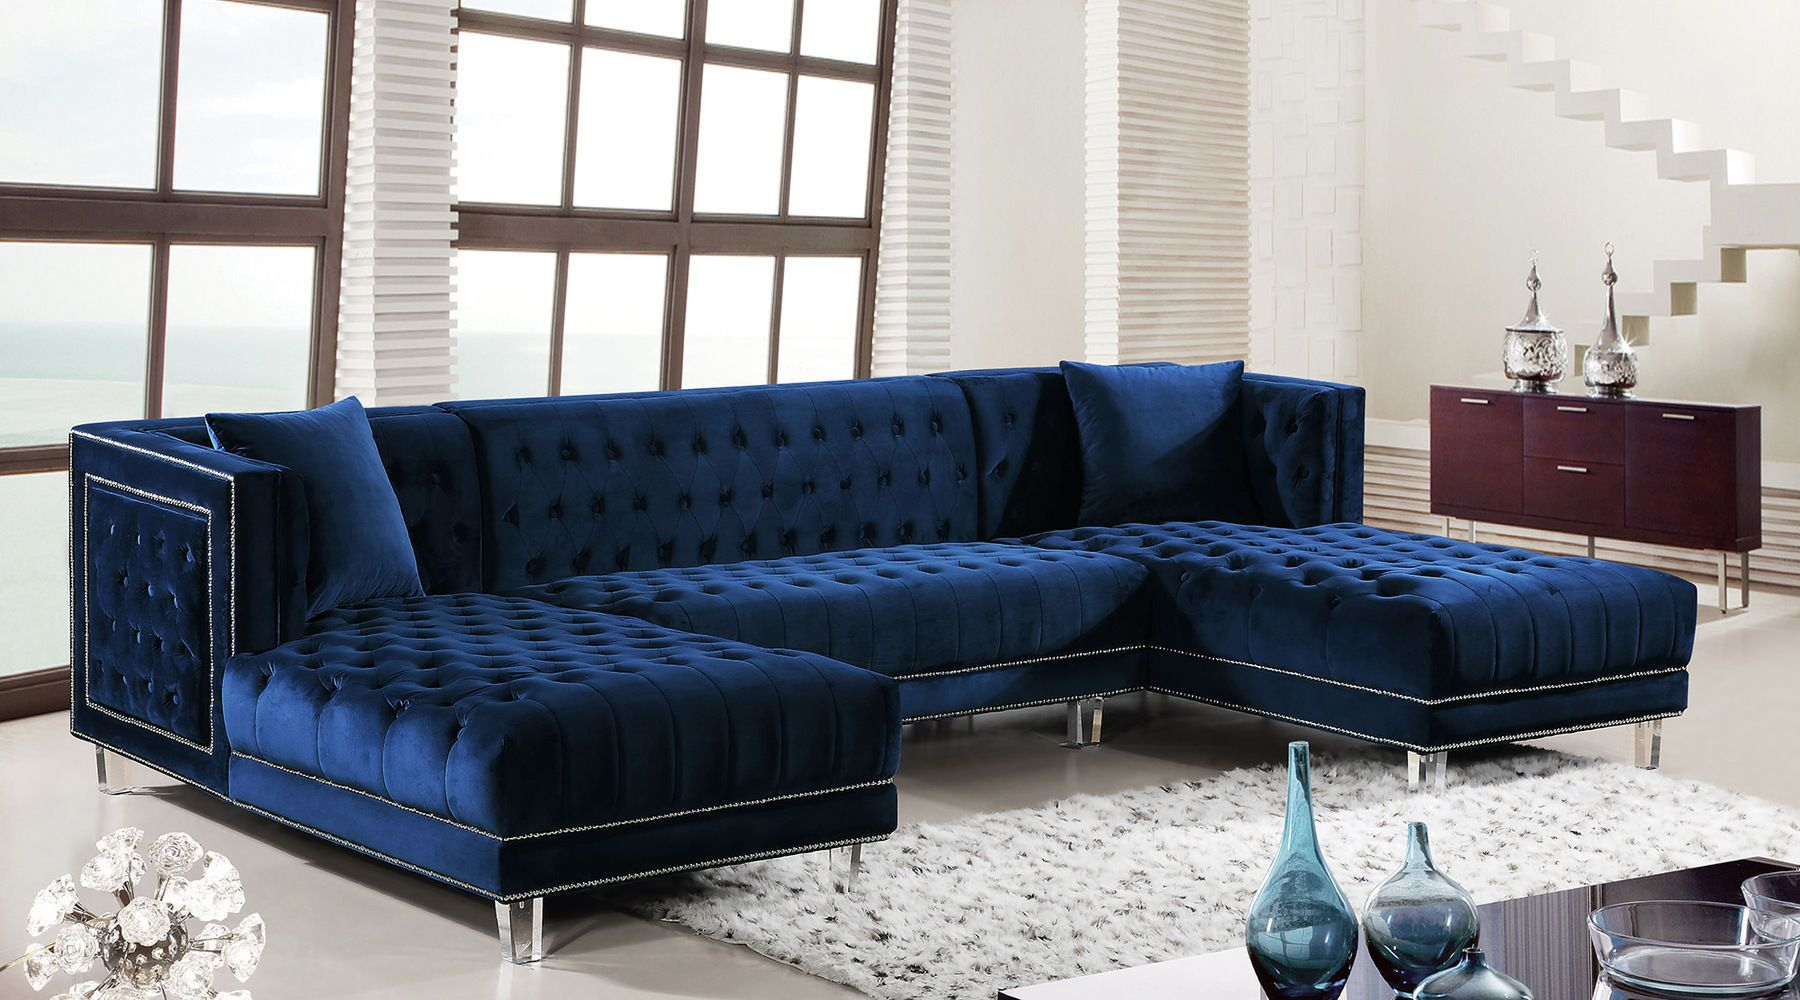 Moda Blue Sectional Sofa 631 Suzanne Meridian Furniture Sectional Sofas In 2021 Blue Sofas Living Room Blue Couch Living Room Blue Living Room